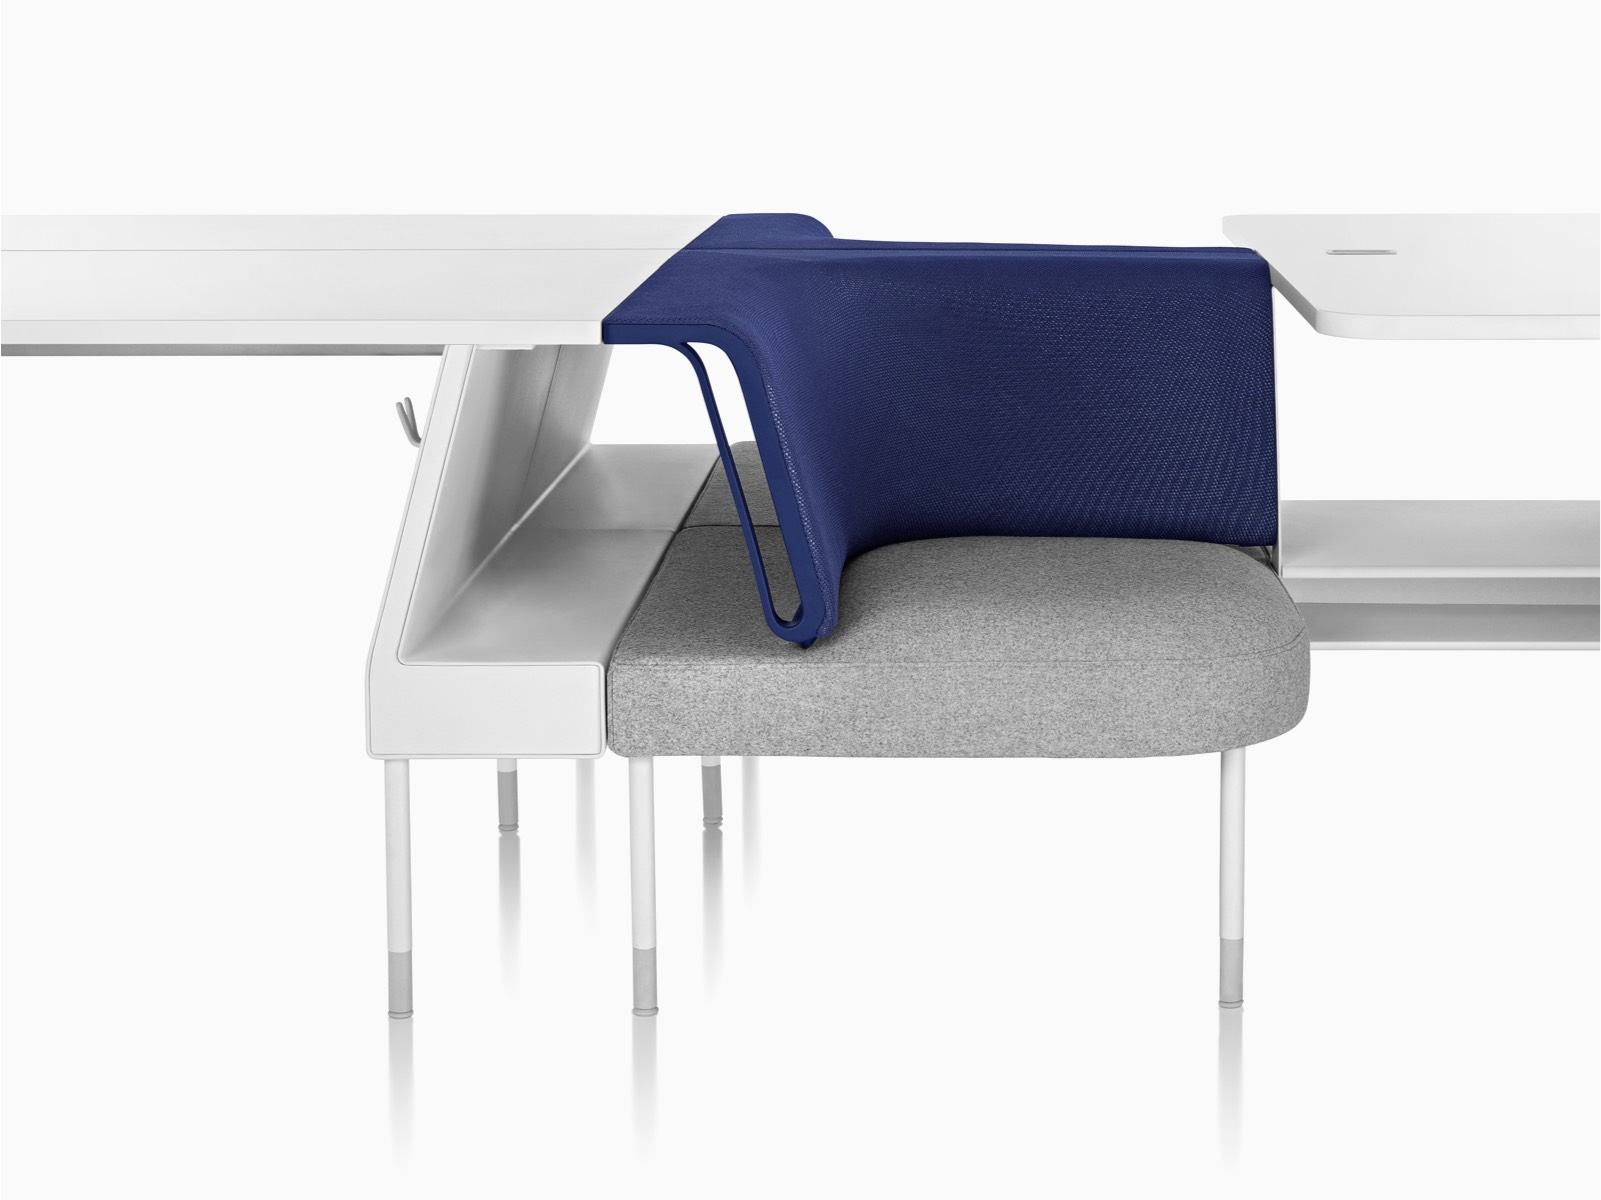 A Public Office Landscape social chair in grey and blue positioned between a desk and collaboration surface.